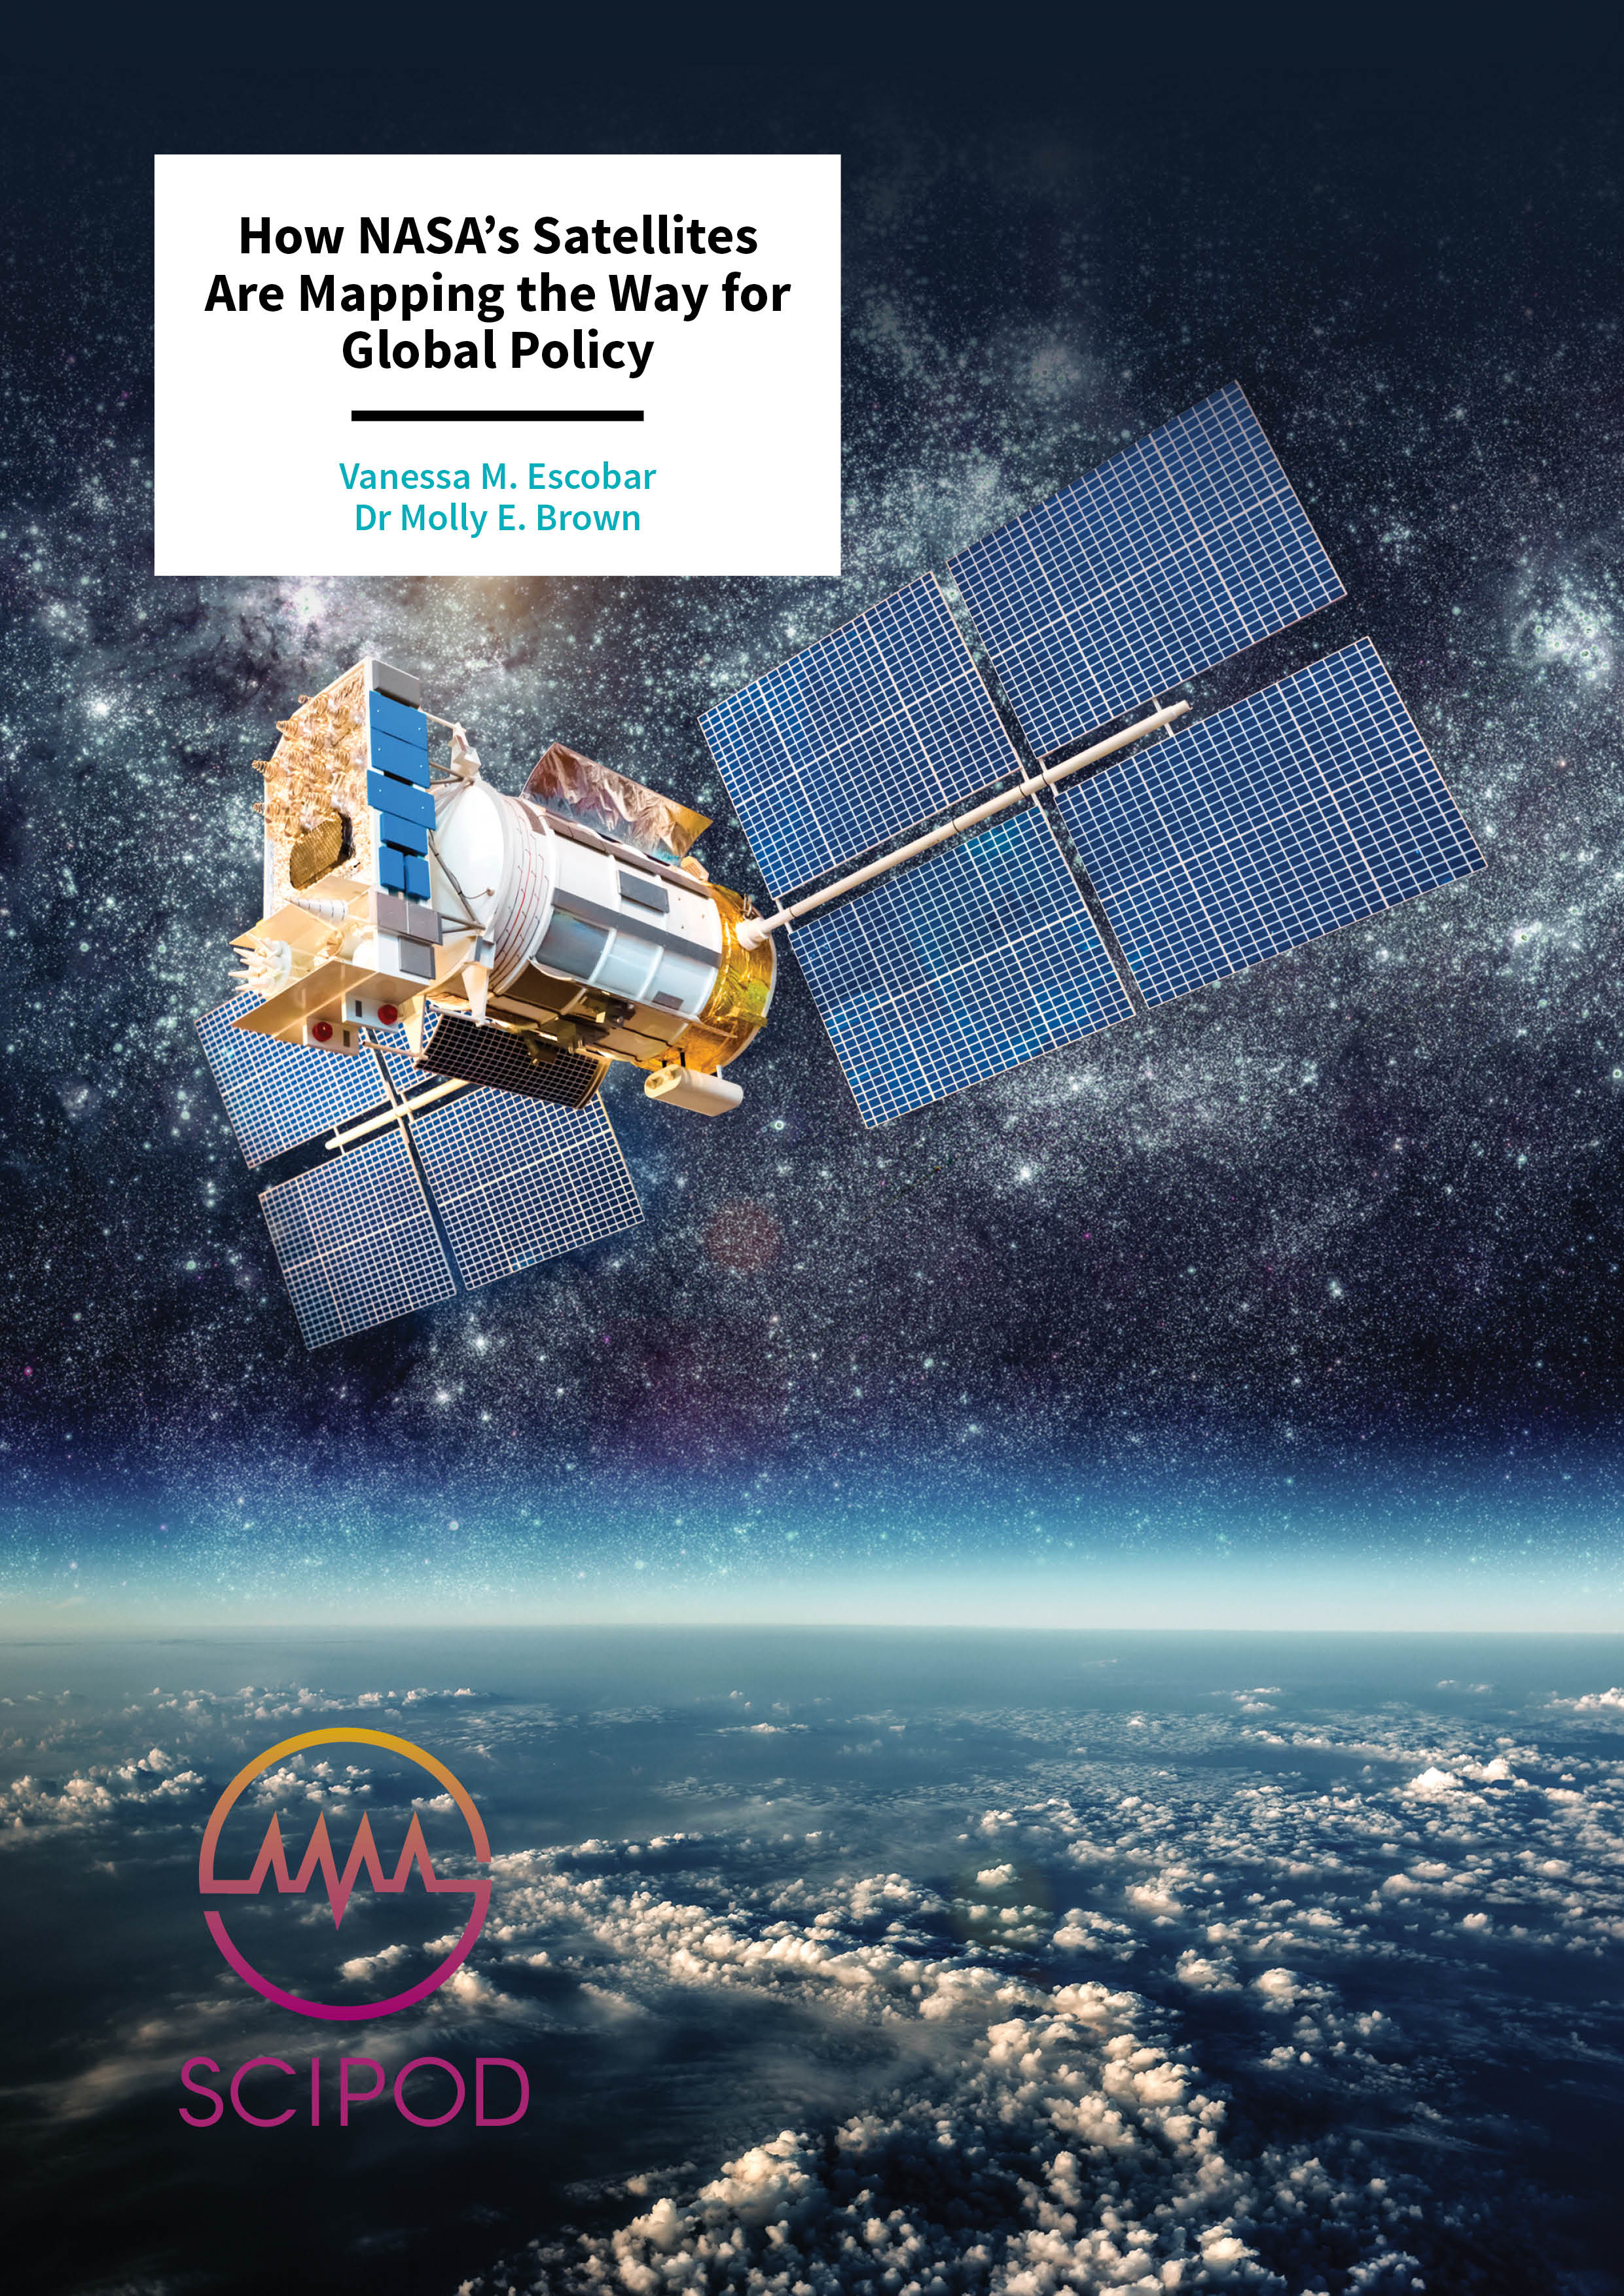 How NASA's Satellites Are Mapping the Way for Global Policy – Vanessa M. Escobar and Dr Molly E. Brown